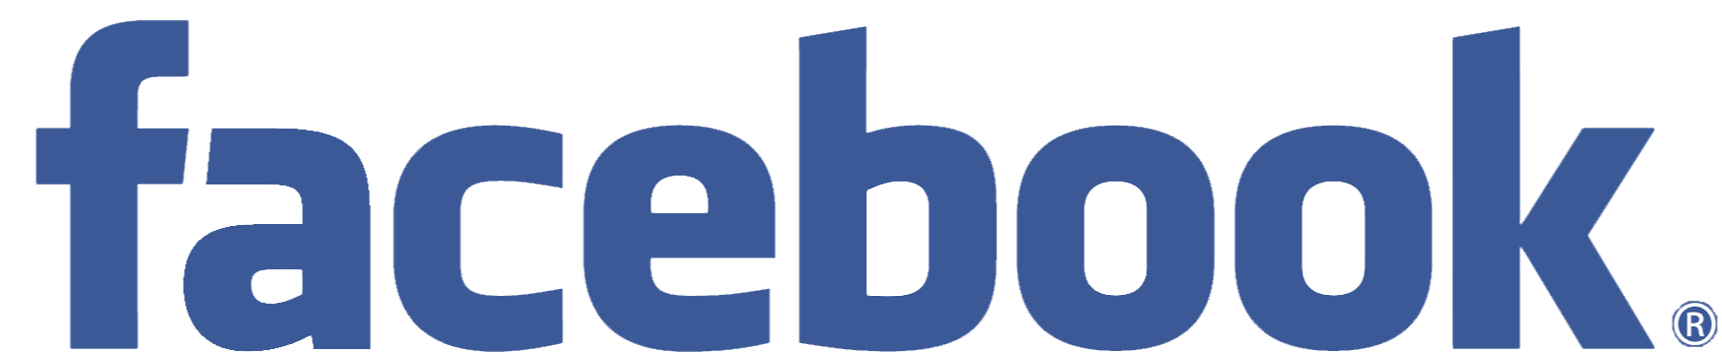 logo facebook transparent png pictures free icons and png backgrounds